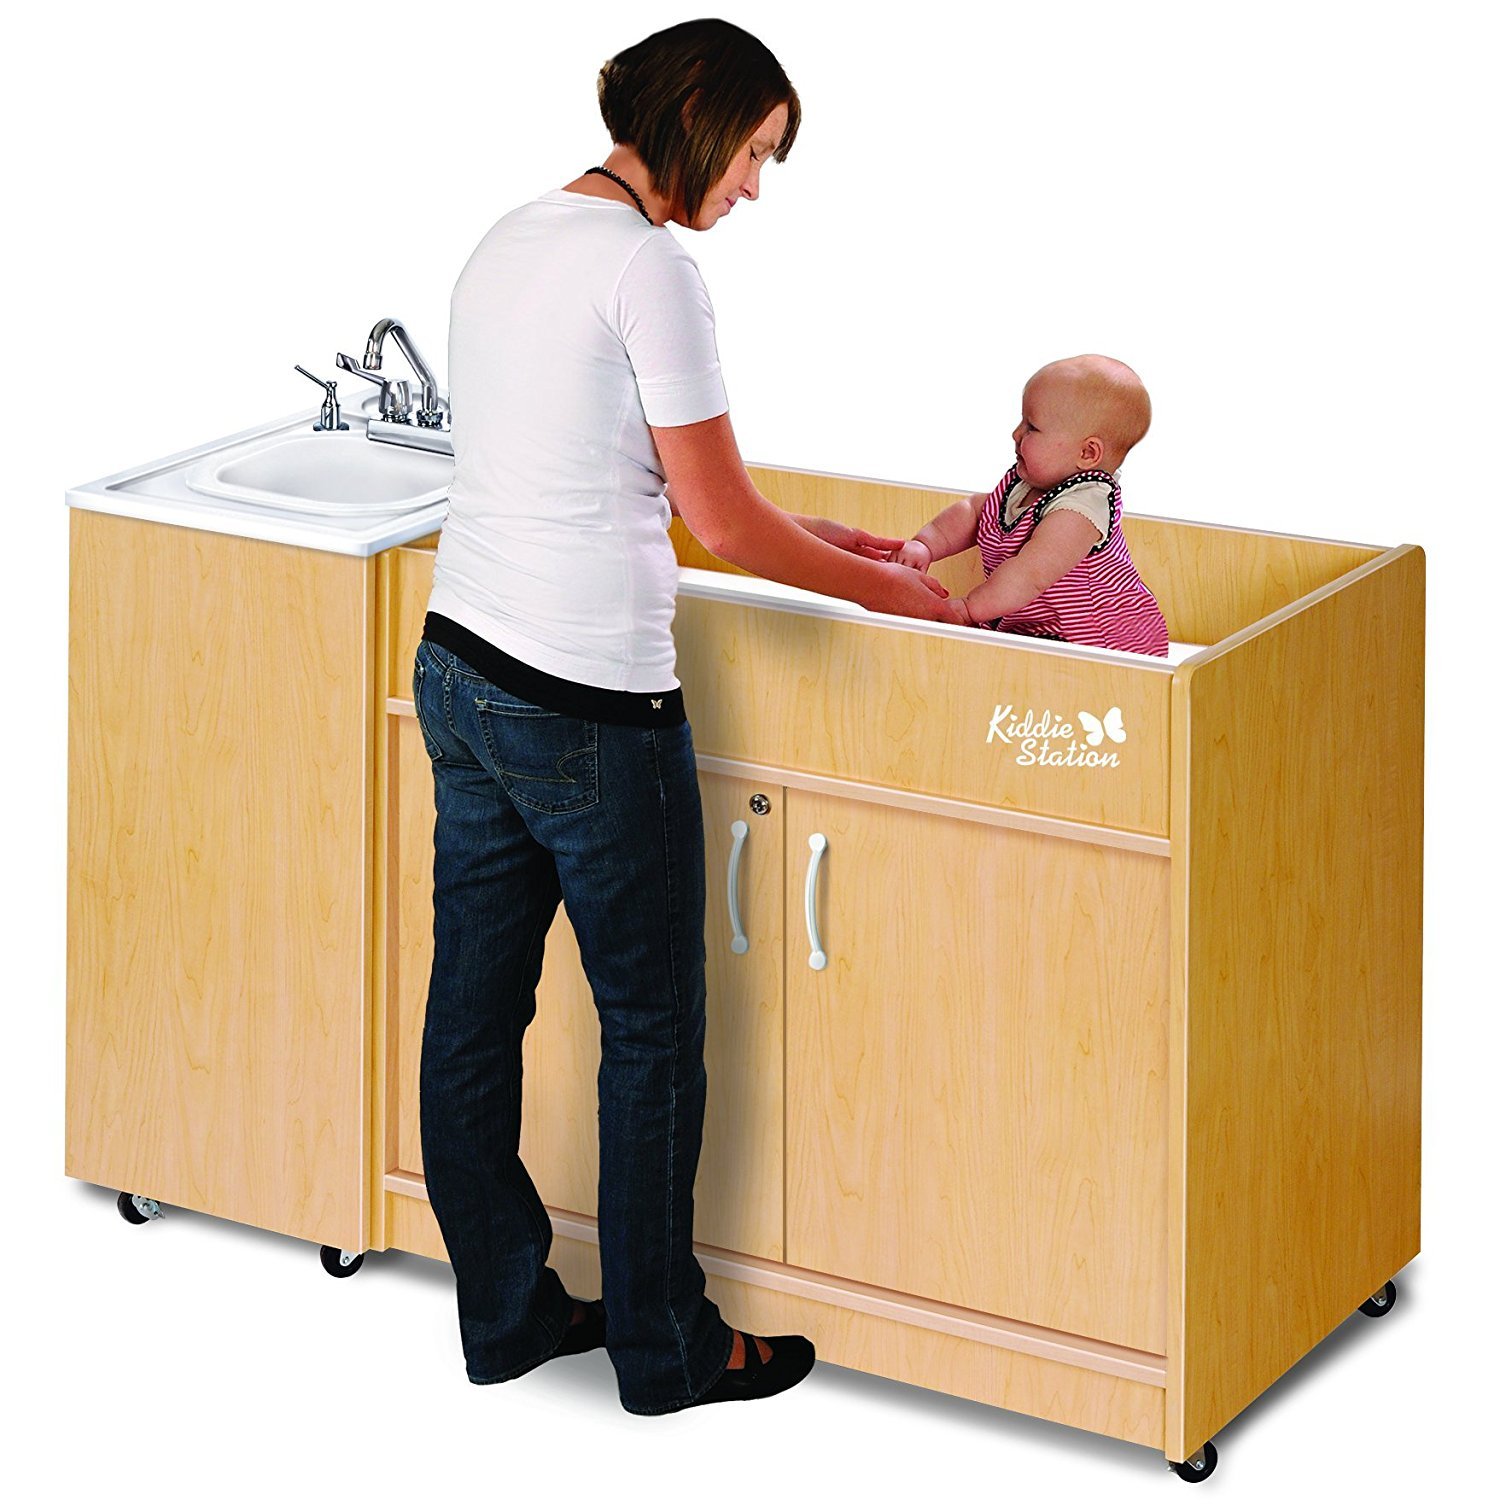 Ozark River Portable Sinks KSSTM-AB-AB1 Kiddie Station